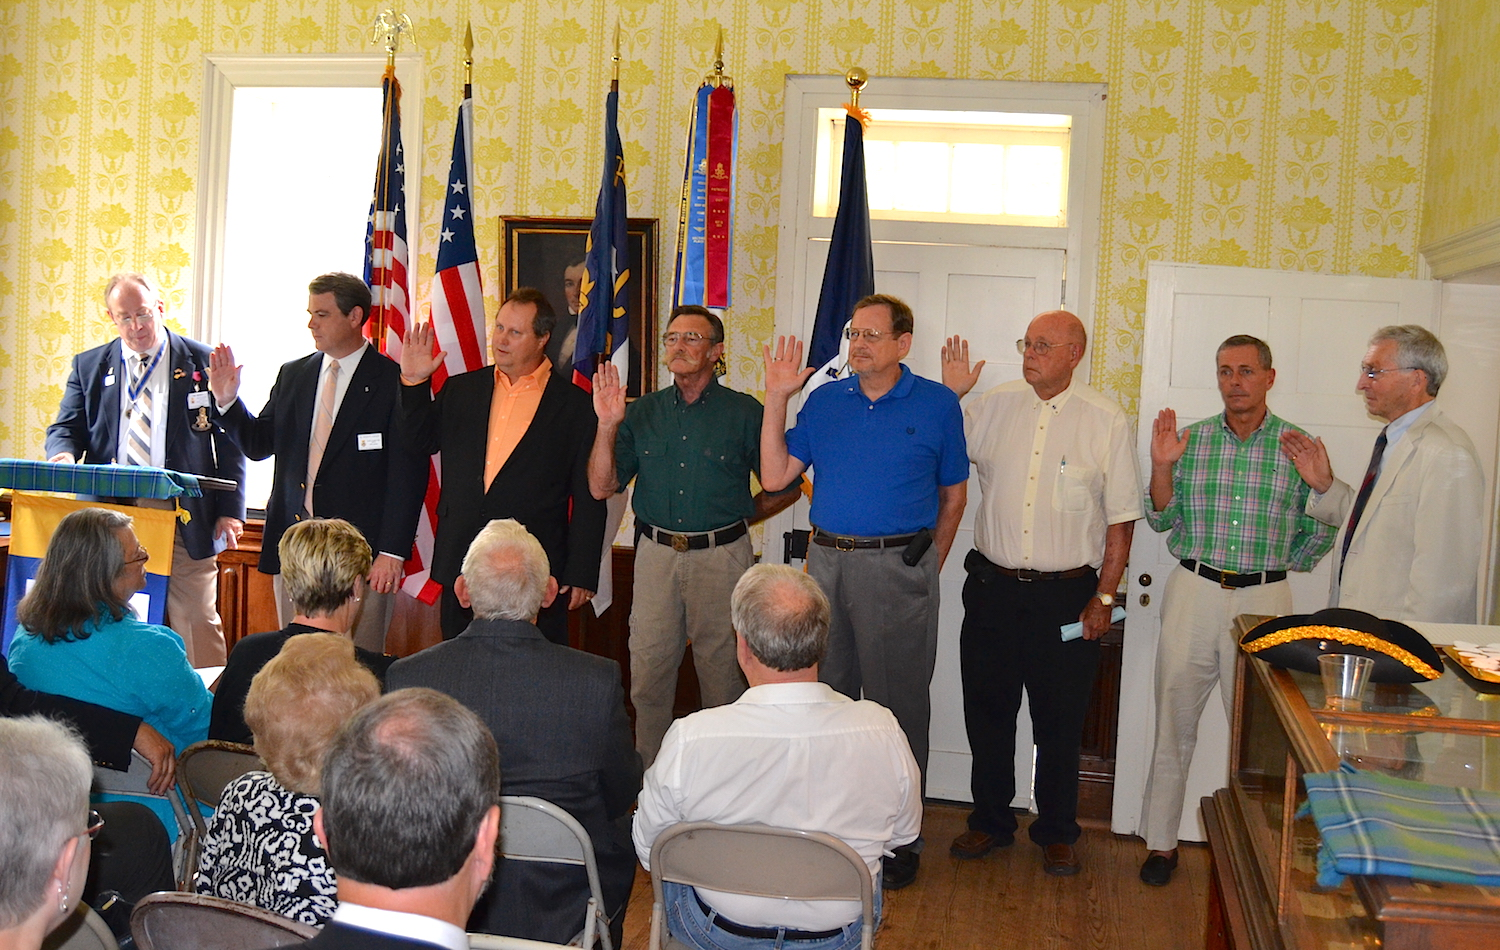 Charter members of the COL Alexander Erwin chapter take their SAR membership oaths on September 12 2015.